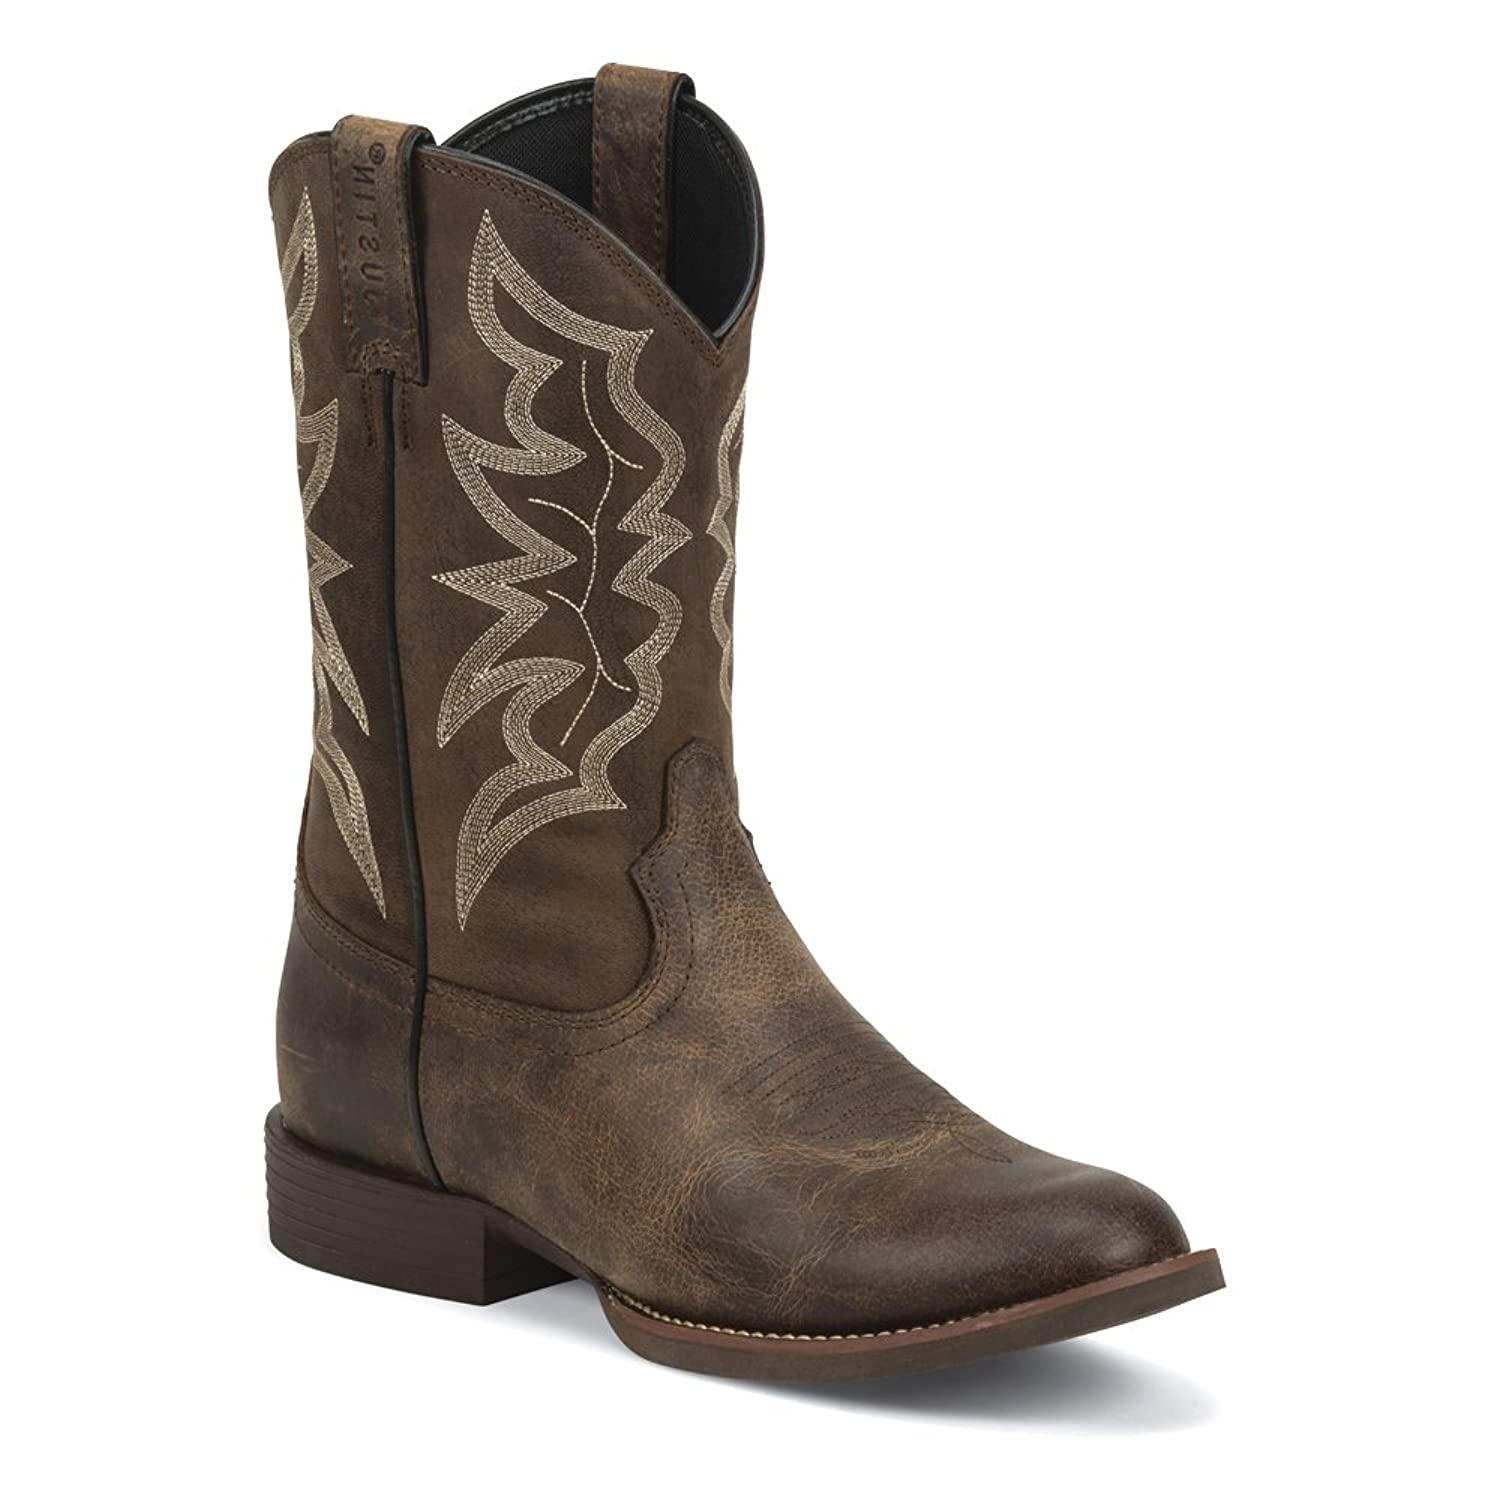 7221 Justin Men's Stampede Western Boots - Distressed Brown - 9.0 - D